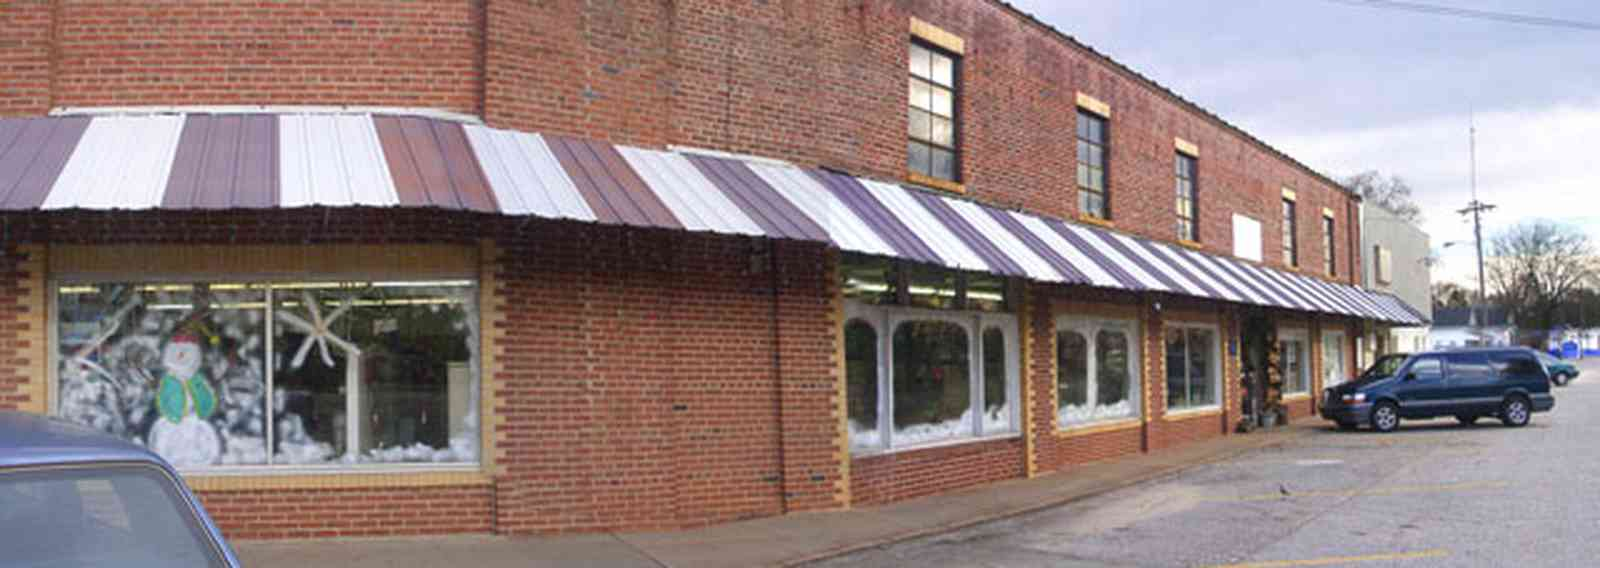 Jay:-Downtown_01.jpg:  brick facade, farming, awning